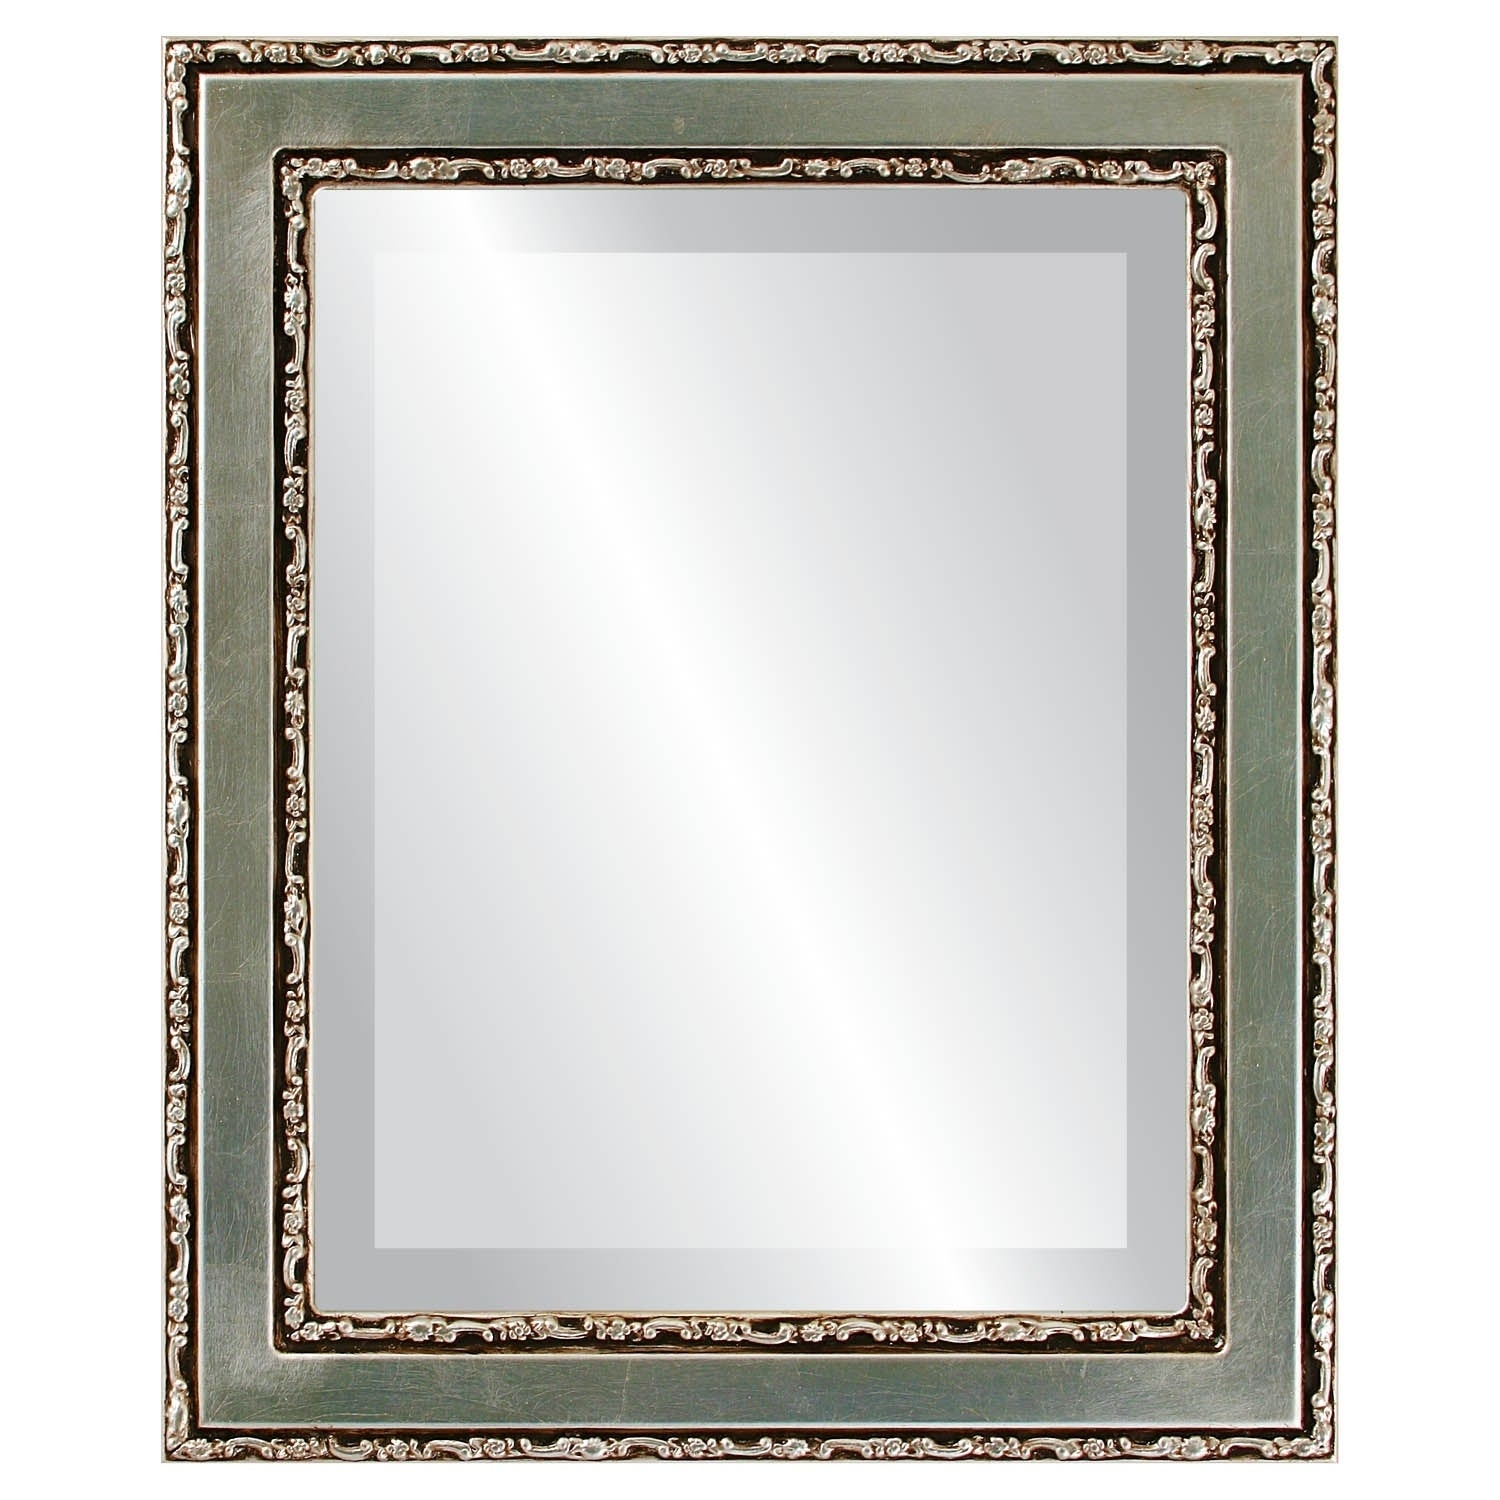 Monticello Framed Rectangle Mirror in Silver Leaf with Brown Antique - Silver/Brown (27x33)